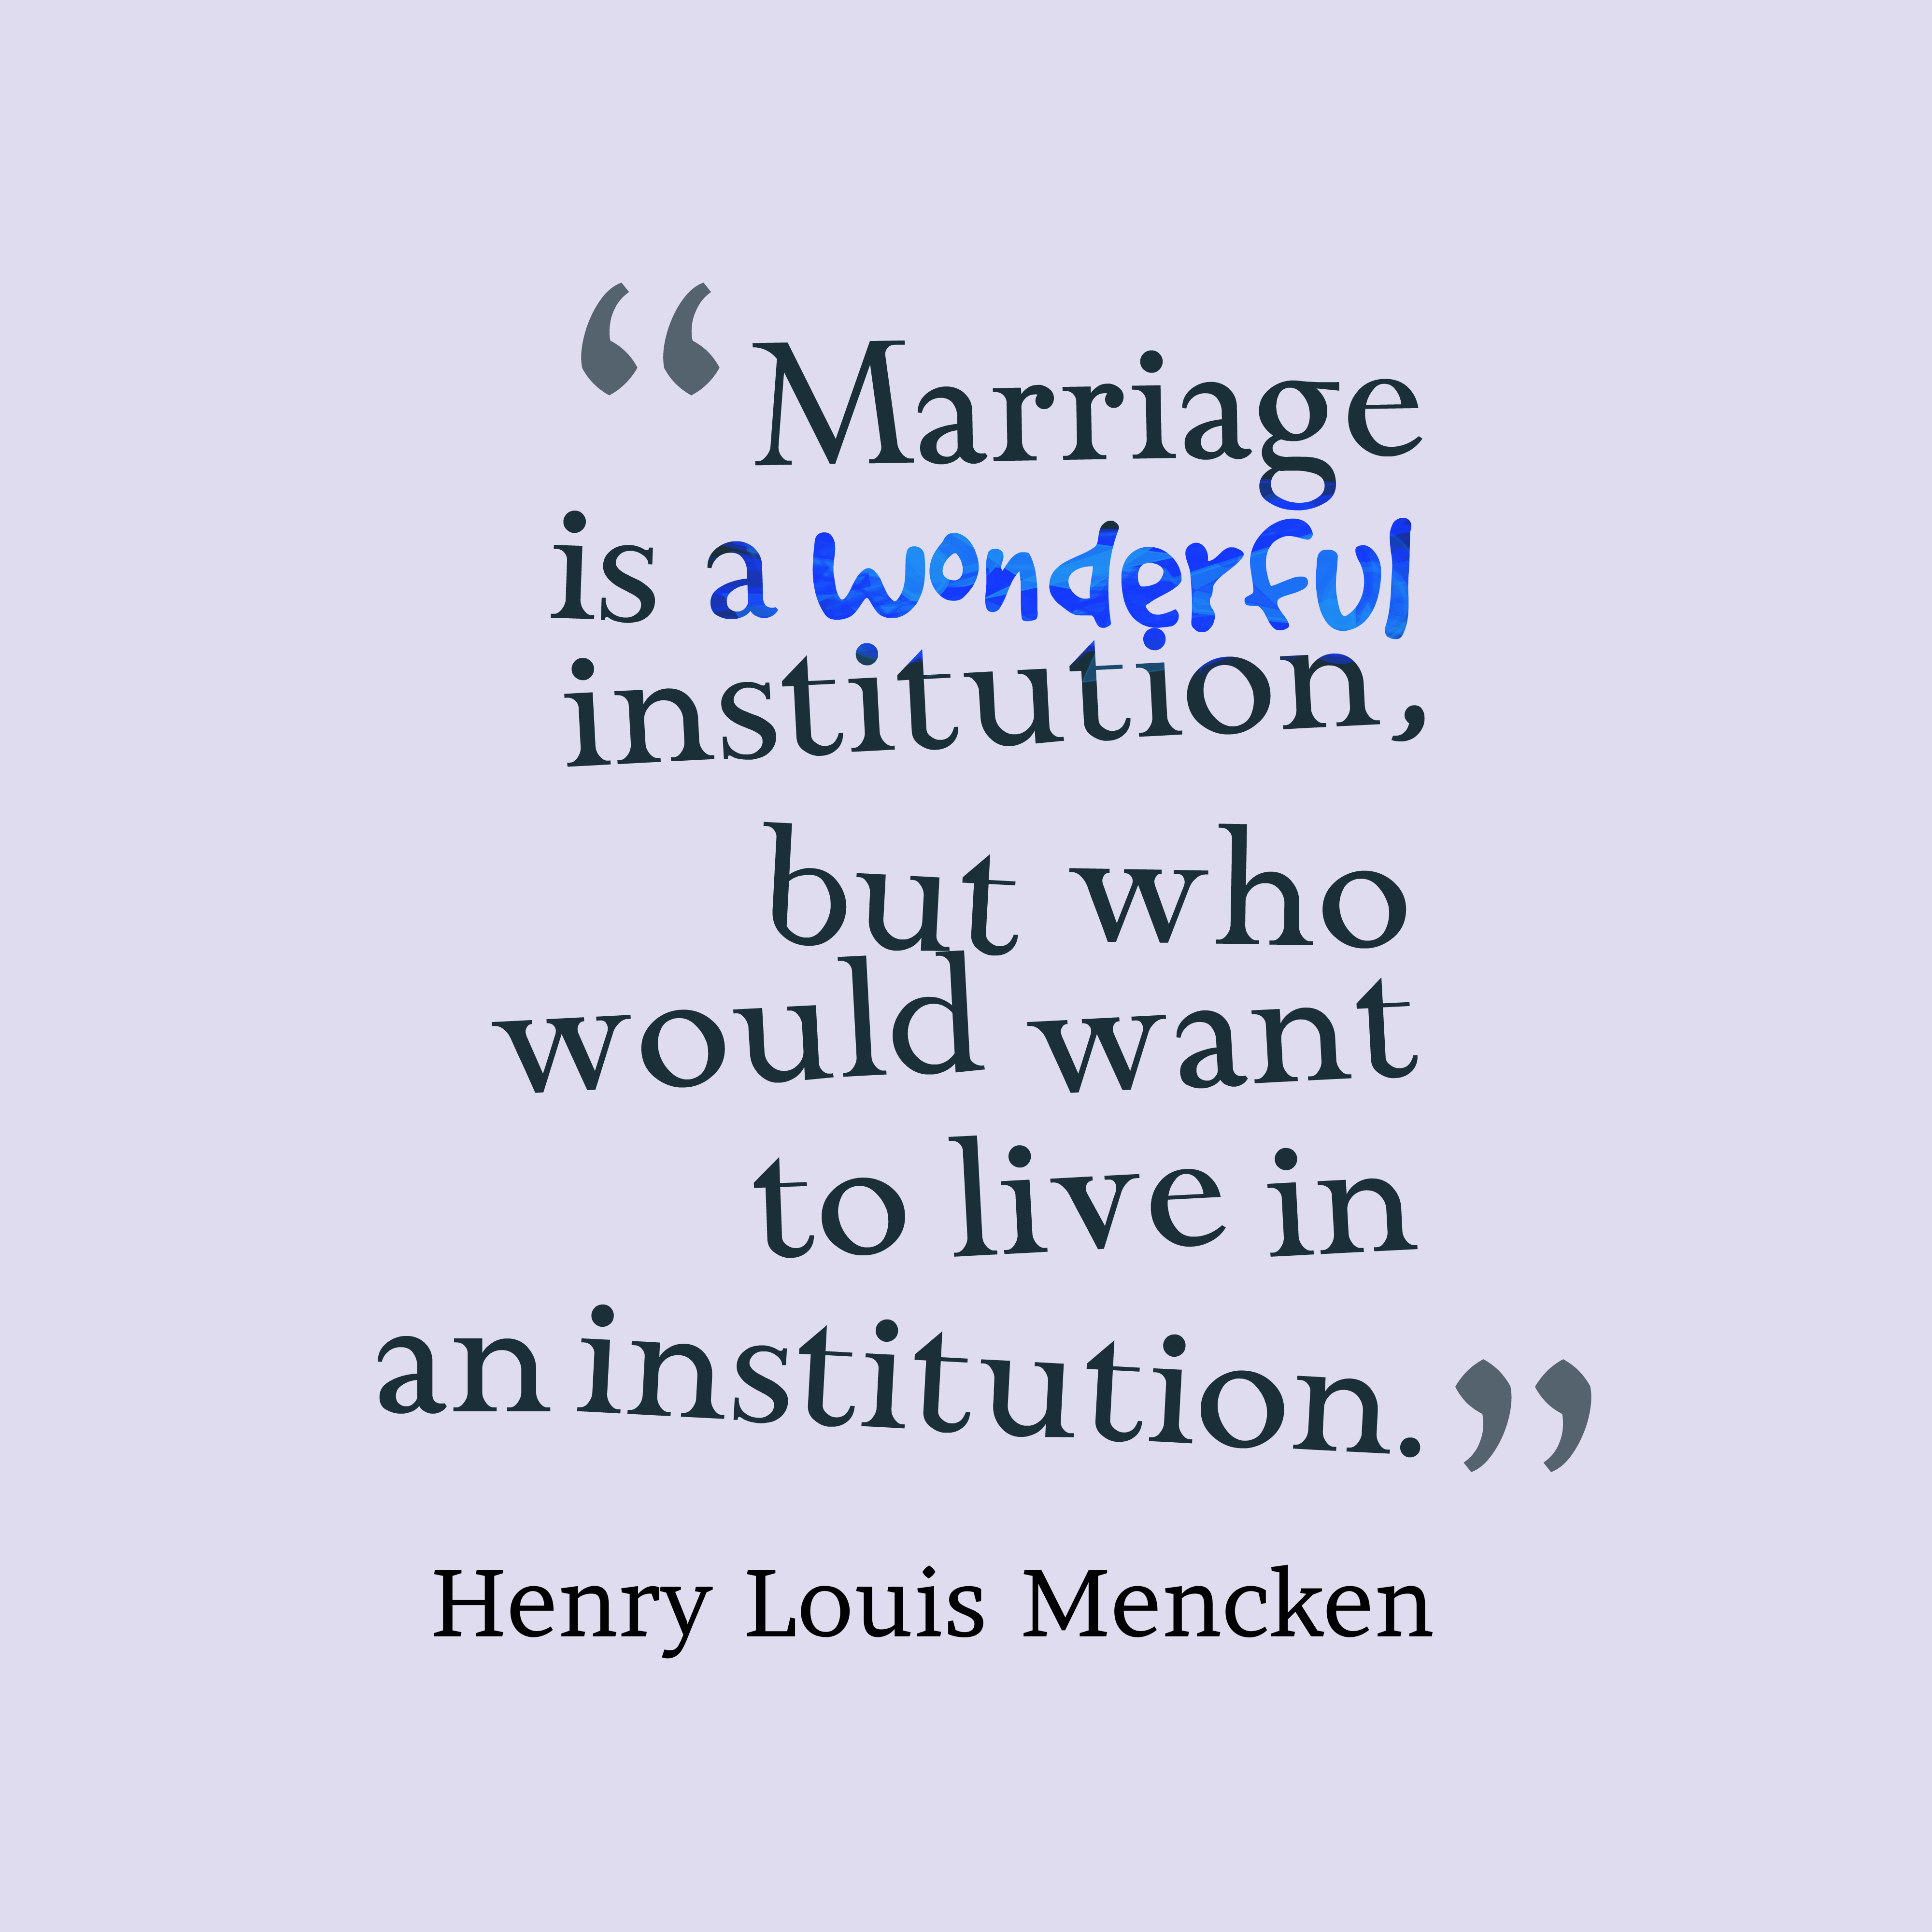 Quotes image of Marriage is a wonderful institution, but who would want to live in an institution.